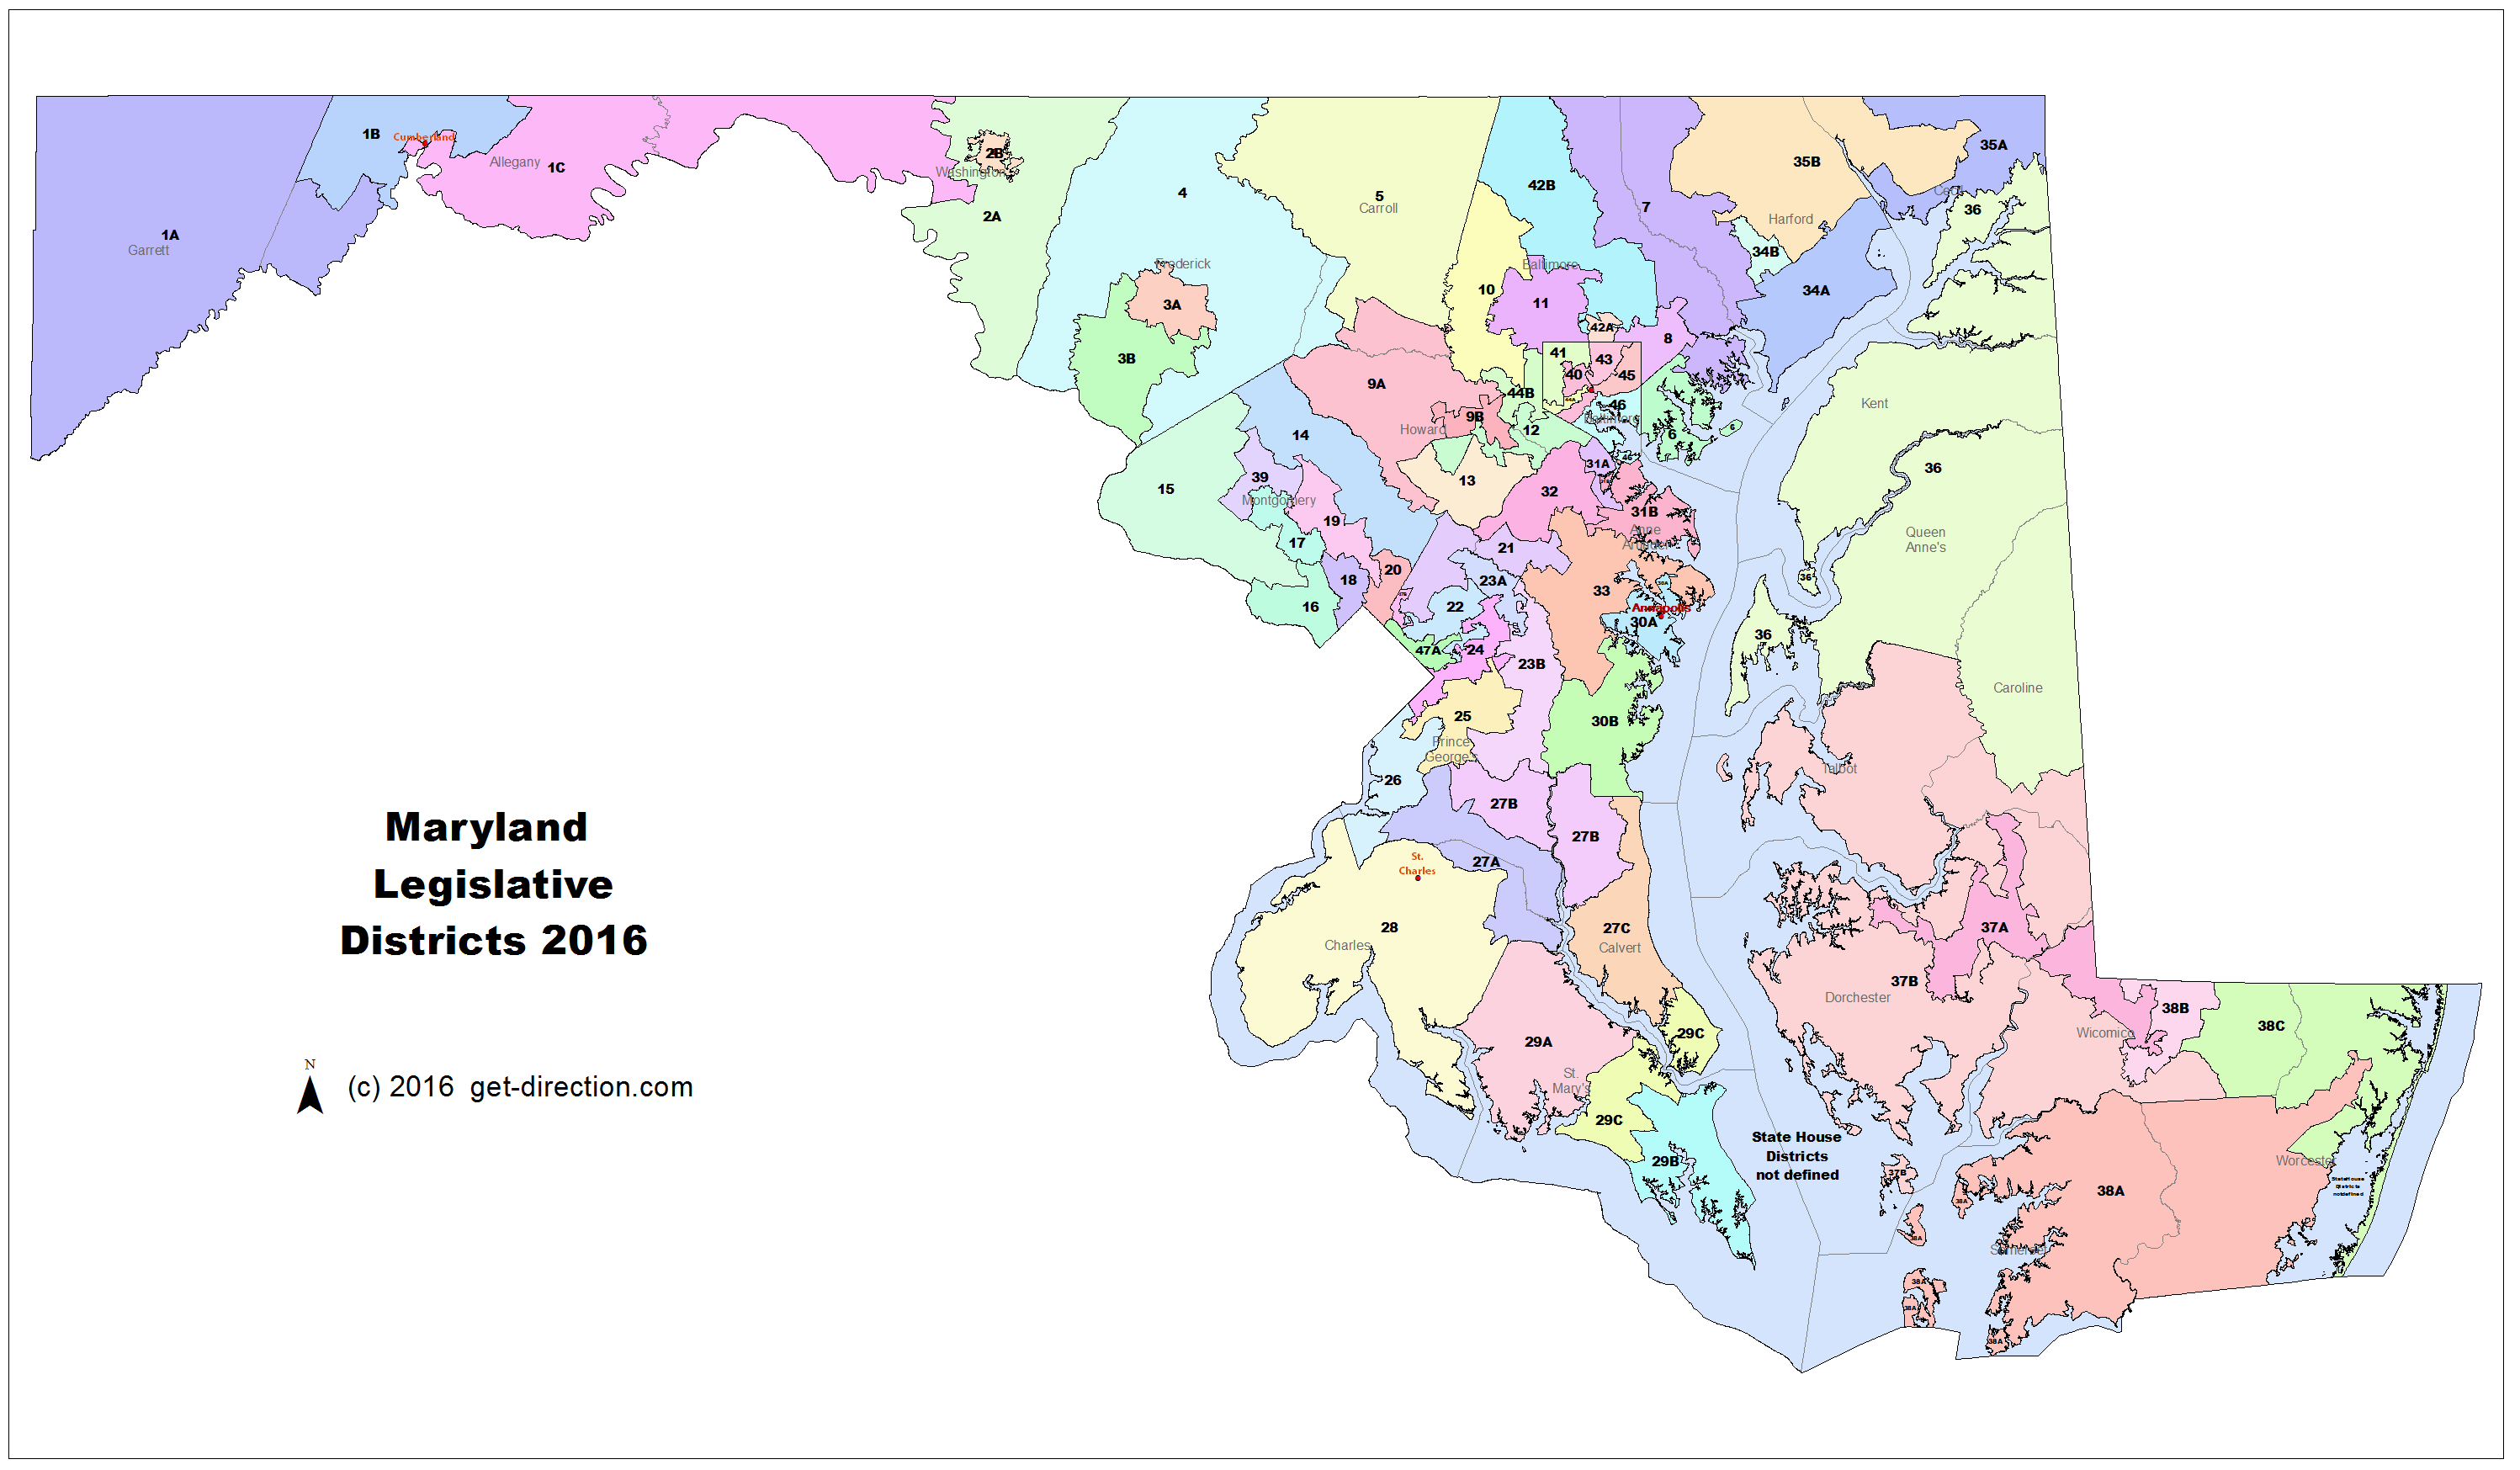 maryland-legislative-districts-2016.png